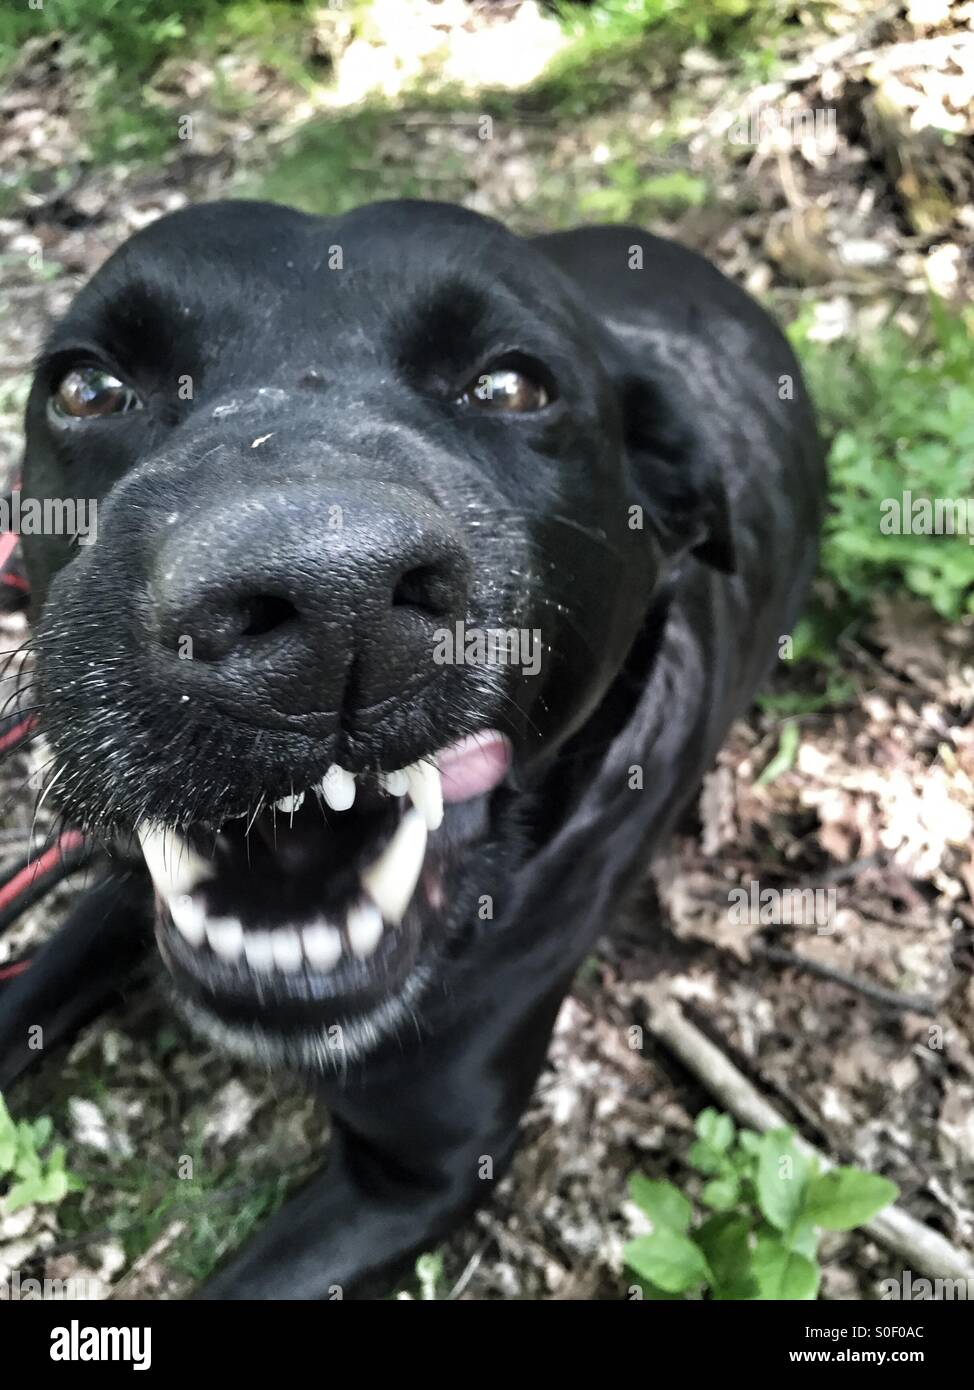 Dog making a face - Stock Image